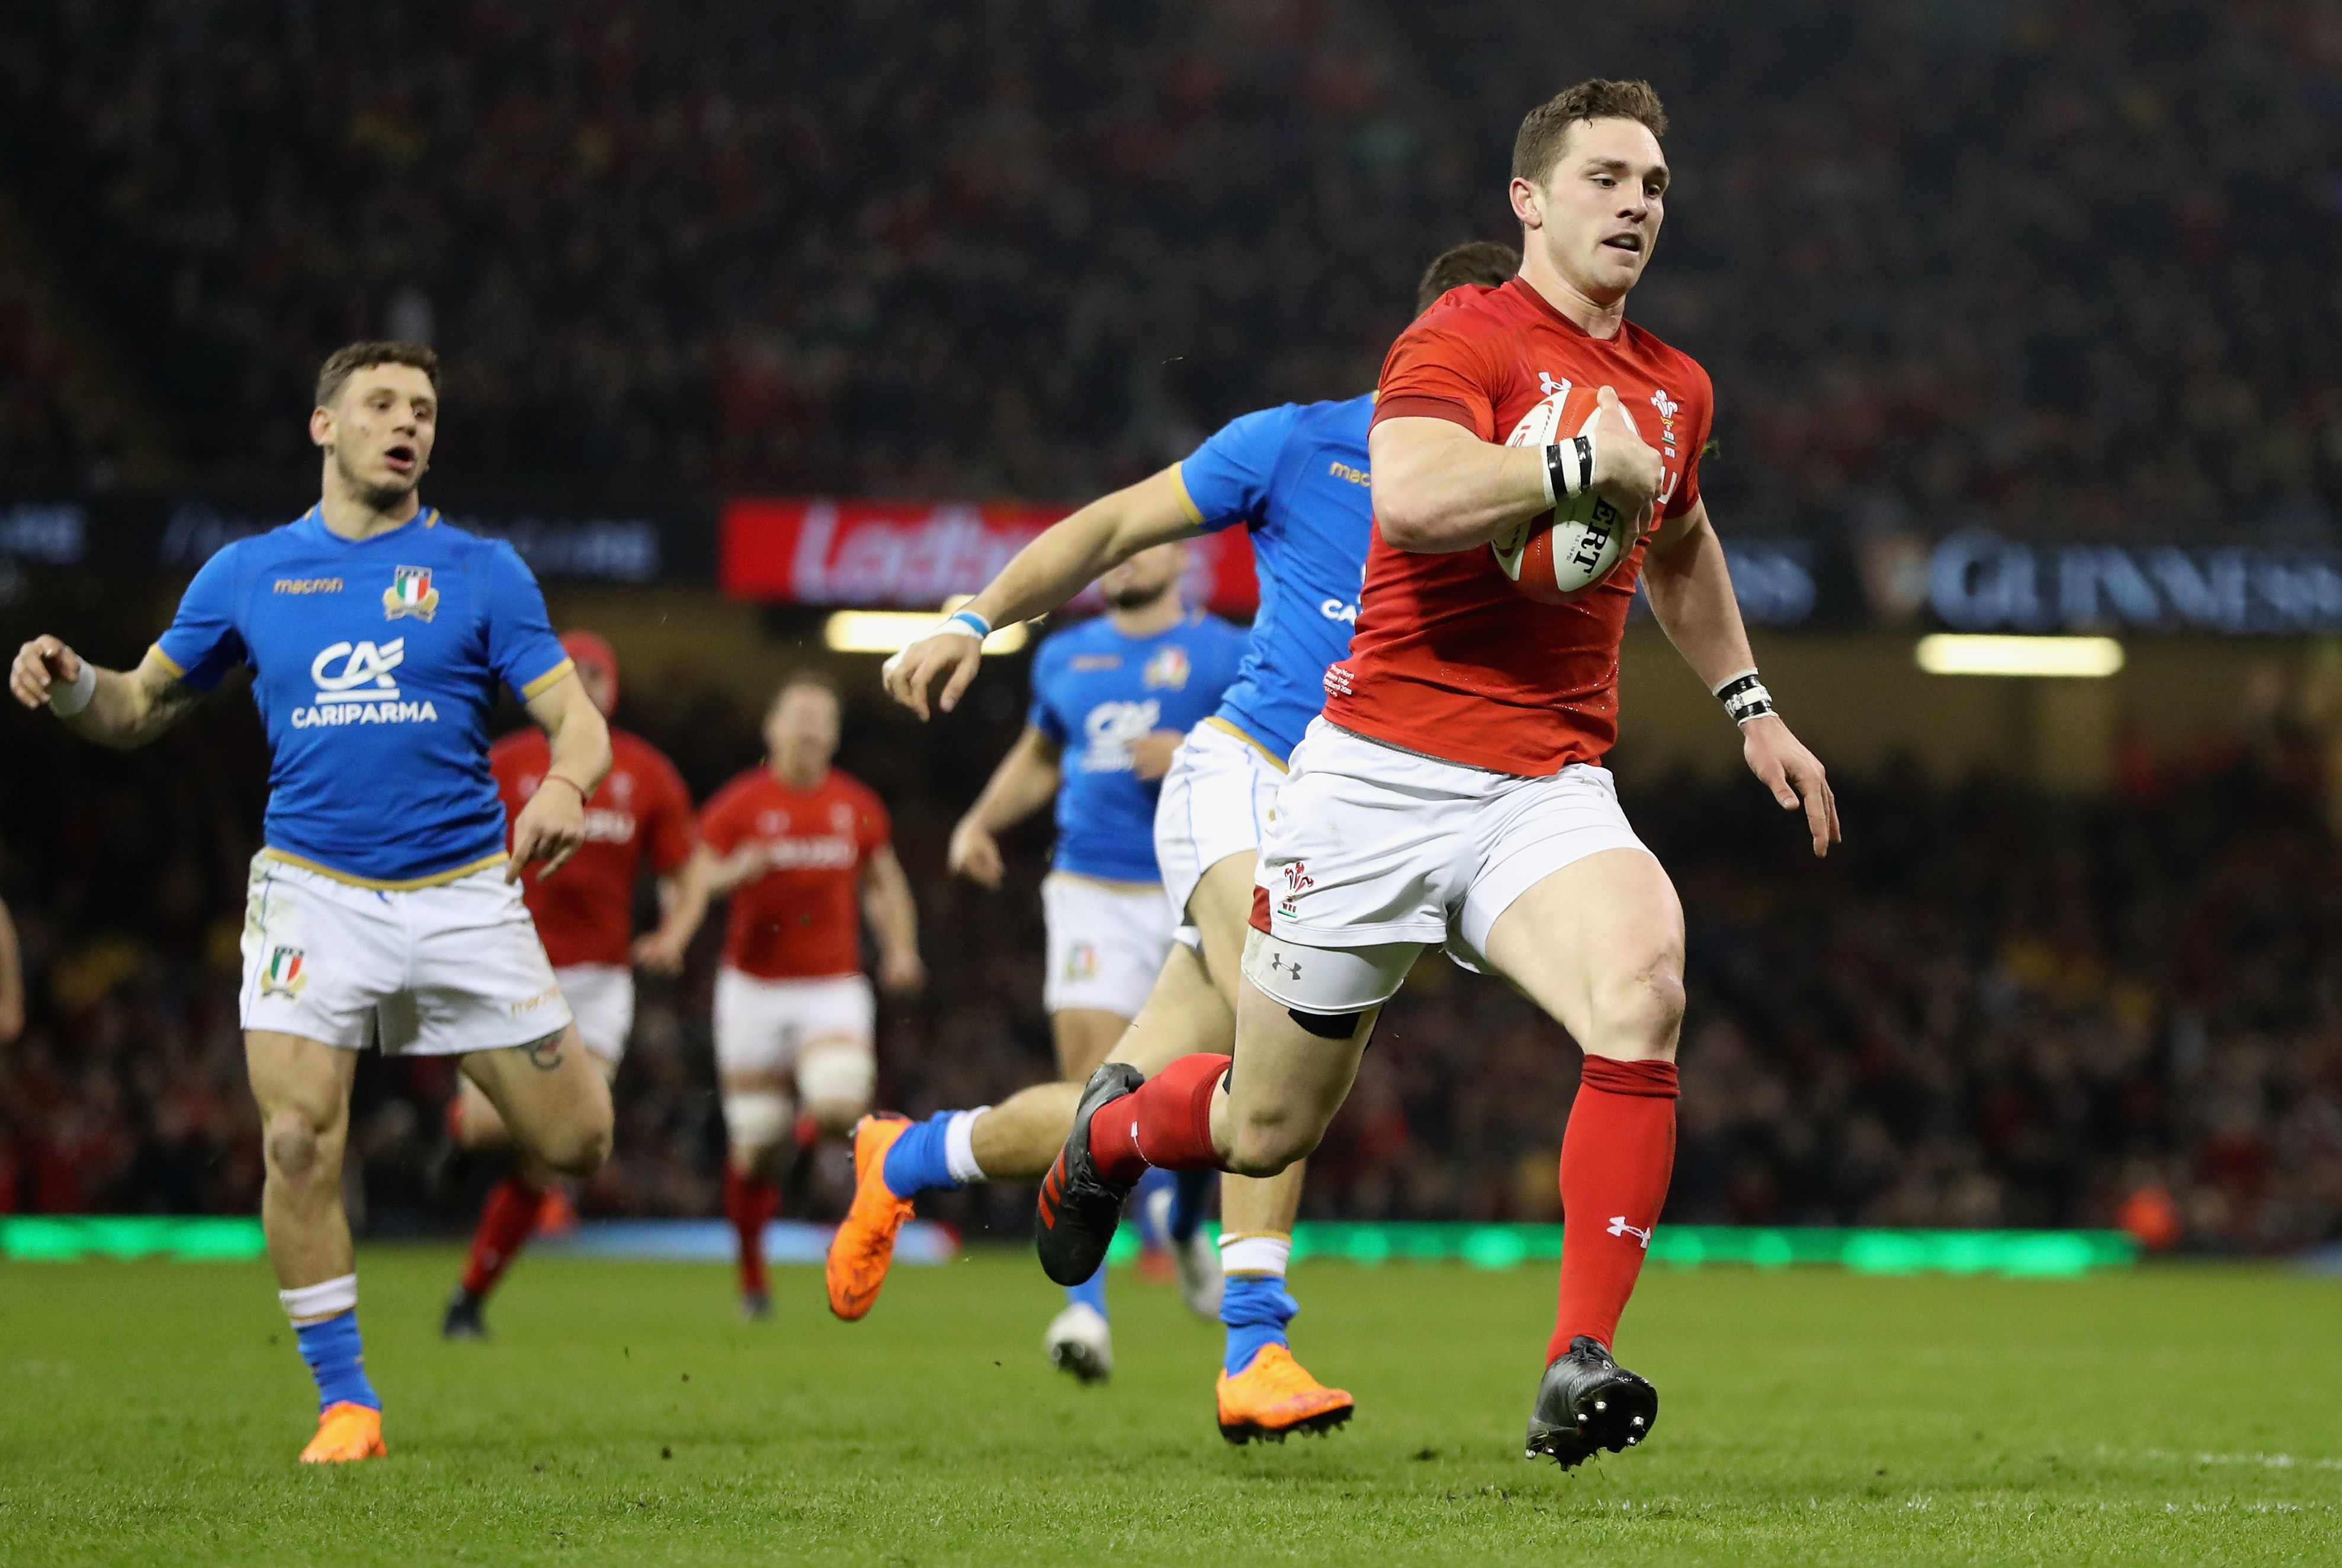 CARDIFF, WALES - MARCH 11:  George North of Wales breaks through to score his first try during the NatWest Six Nations match between Wales and Italy at the Principality Stadium on March 11, 2018 in Cardiff, Wales.  (Photo by David Rogers/Getty Images)